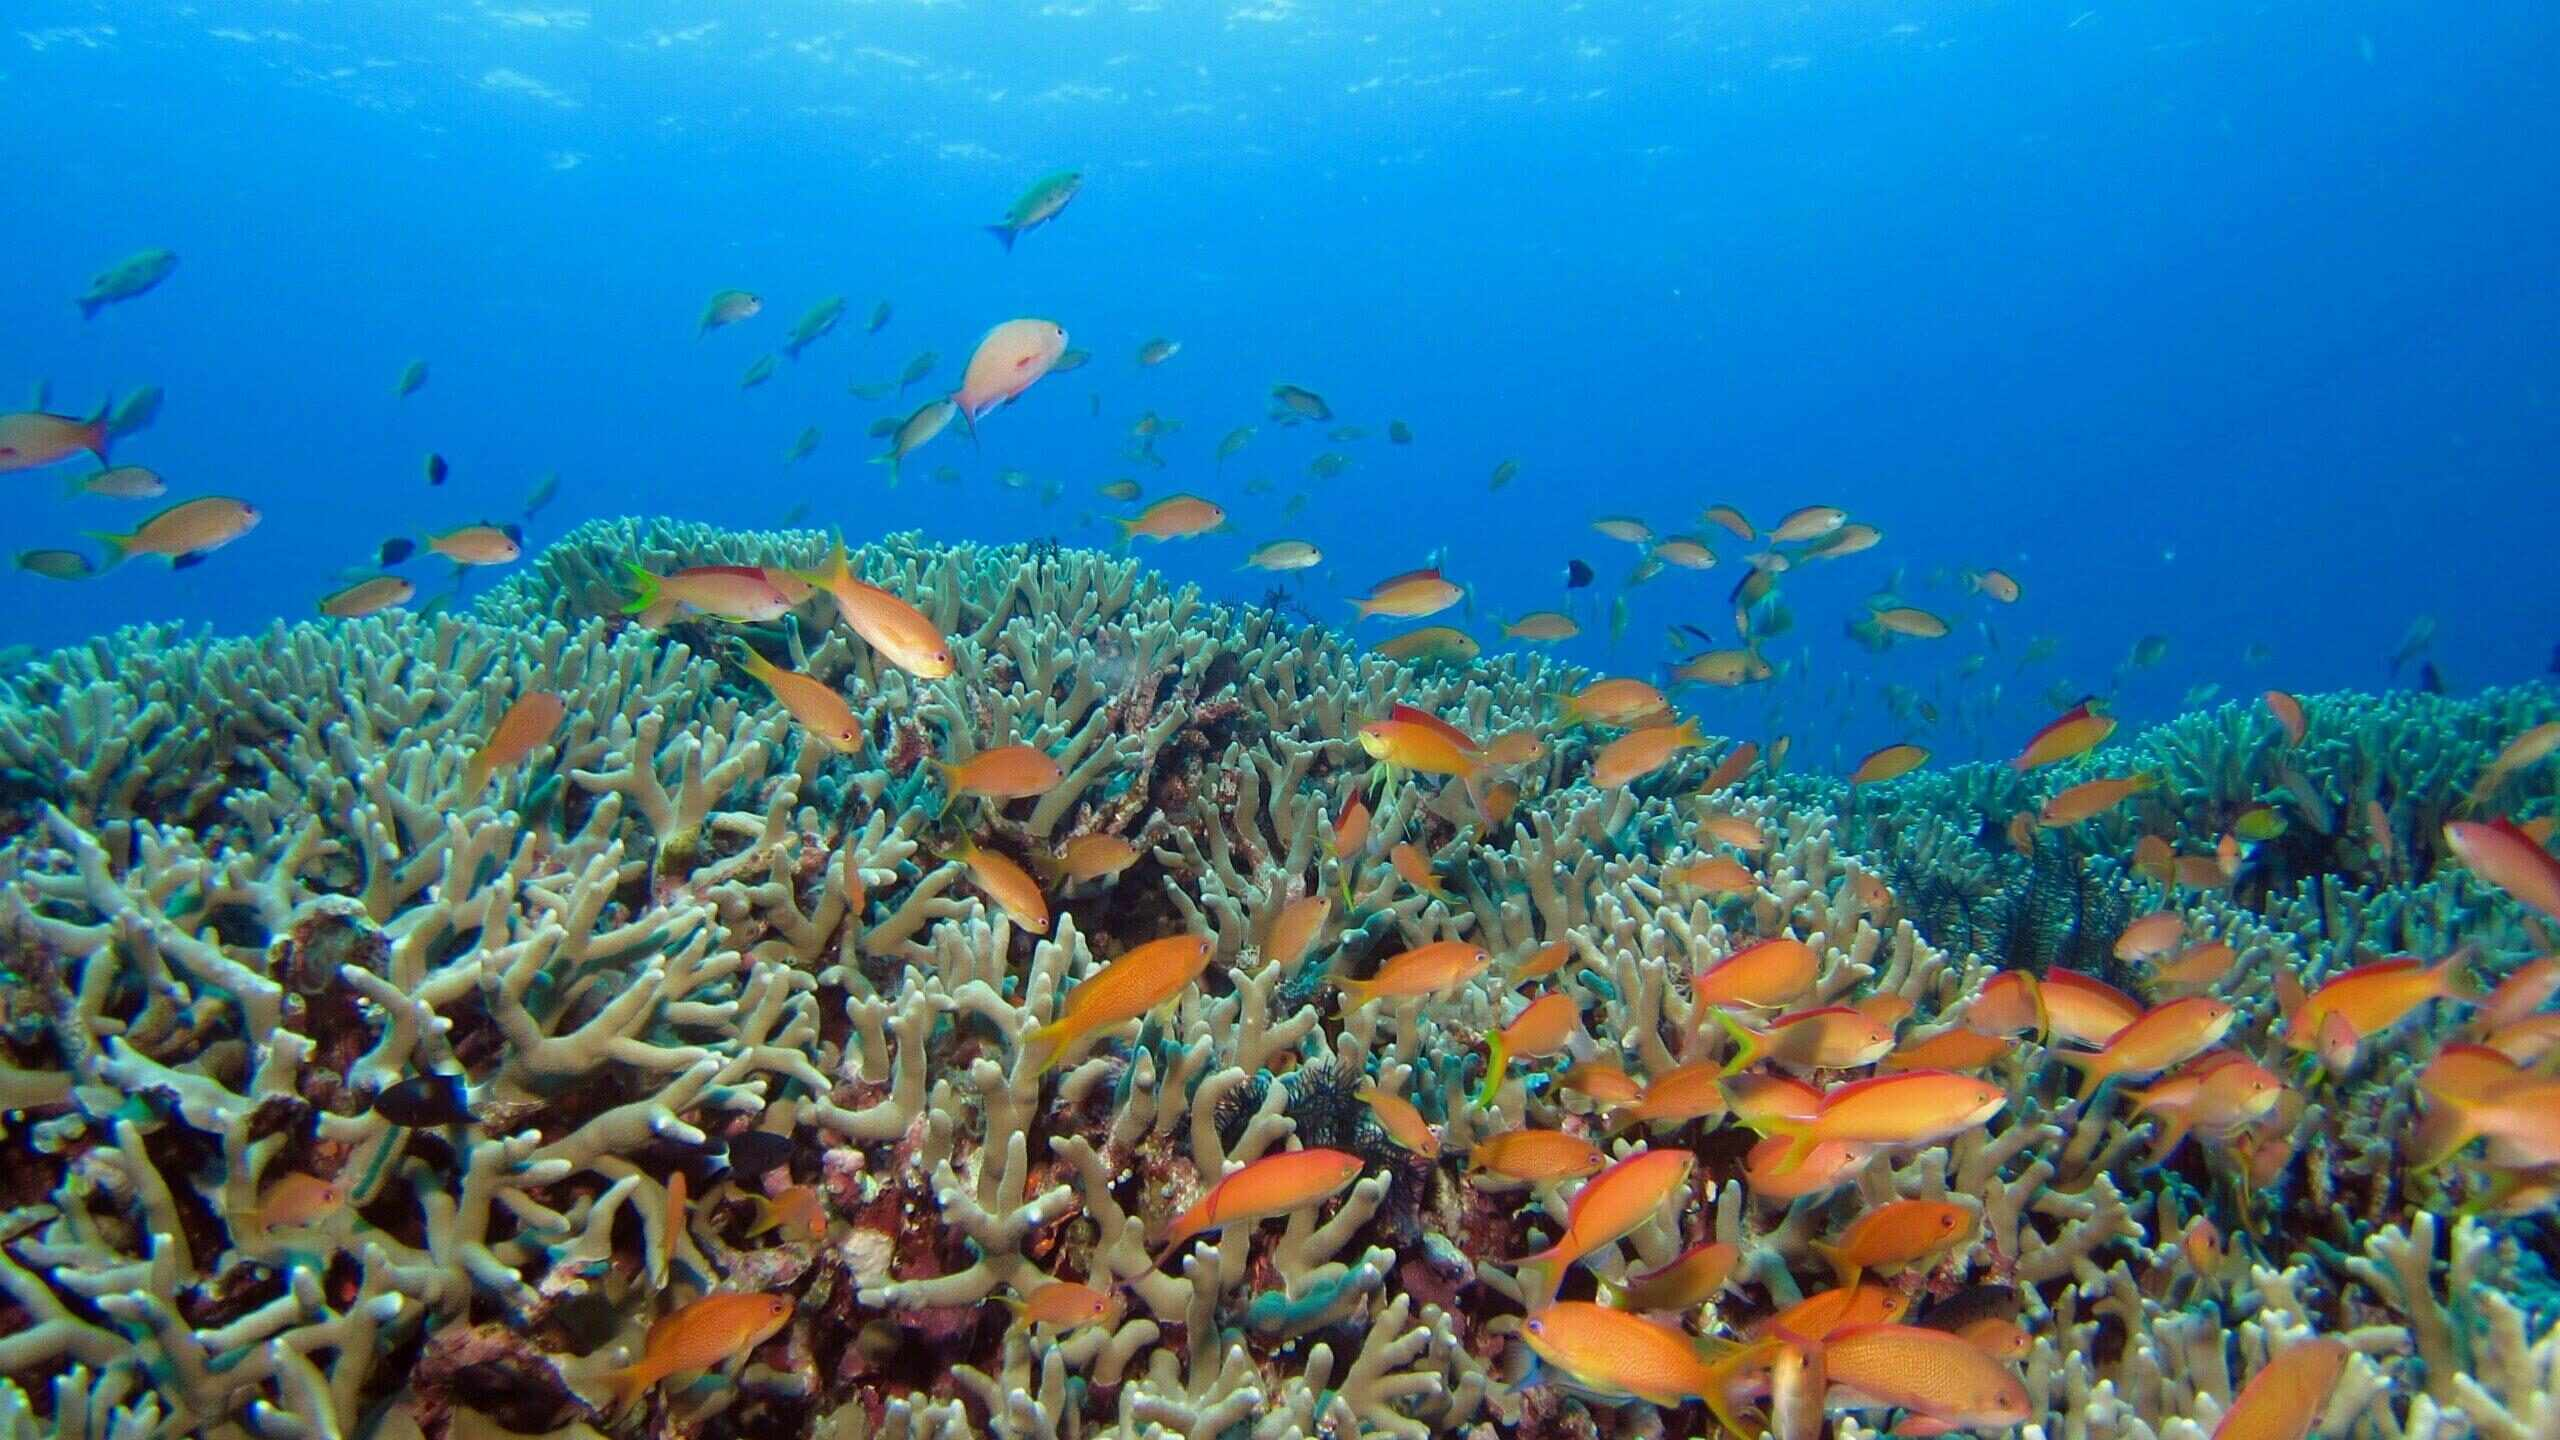 Private snorkeling excursion for groups